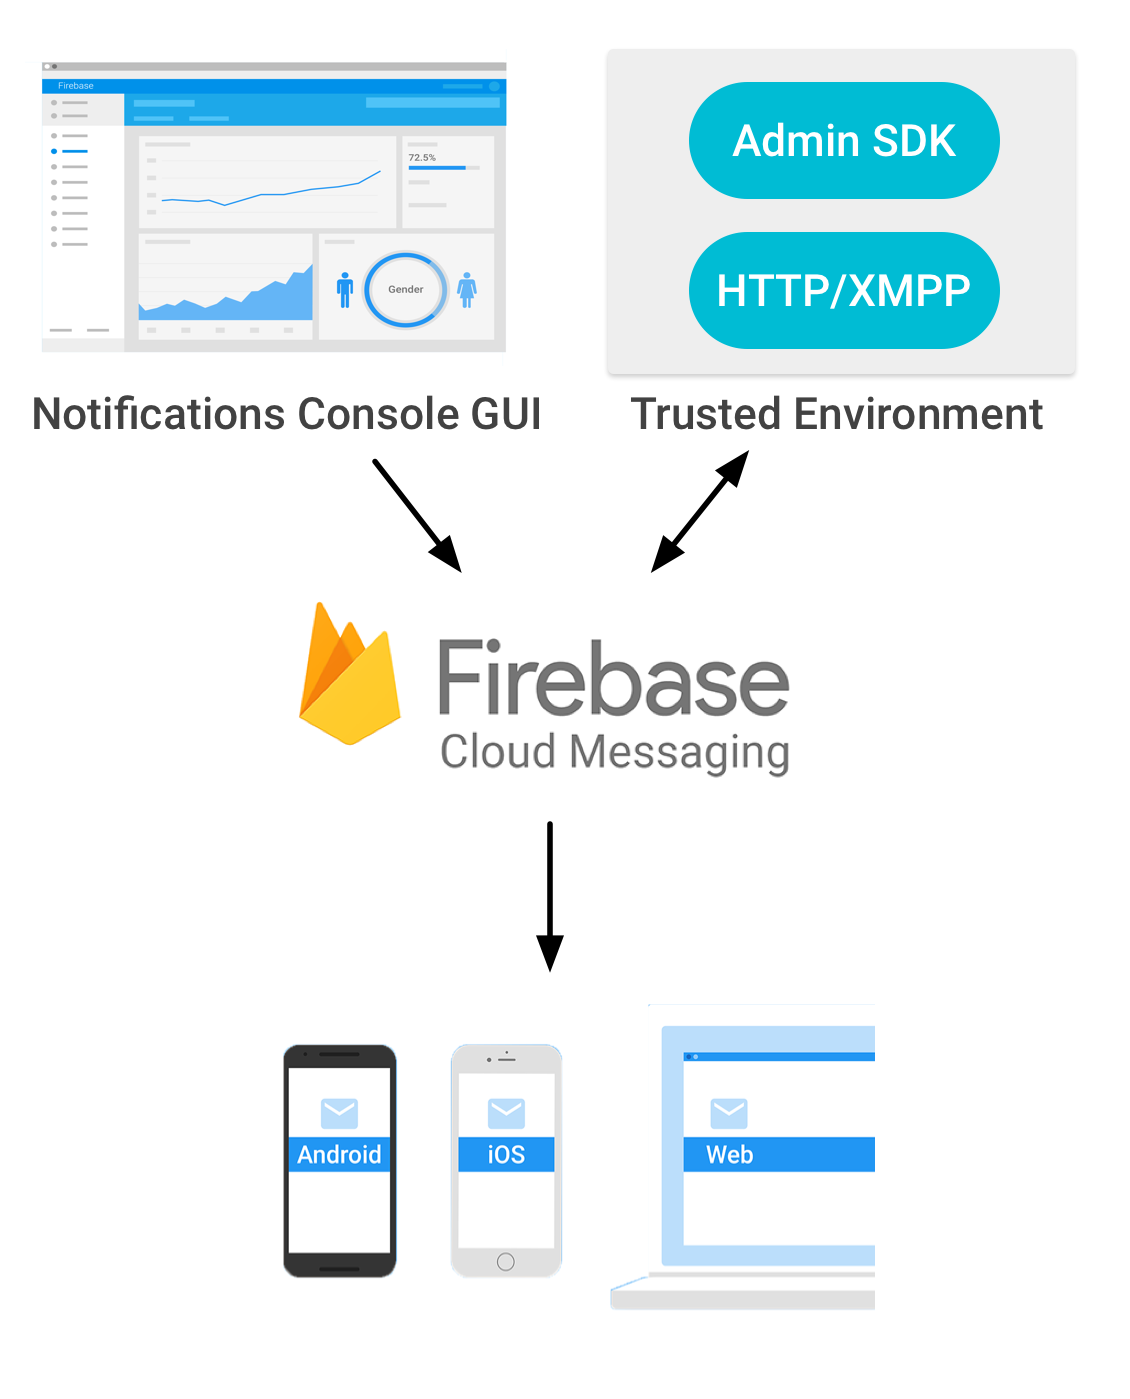 Diagrama da arquitetura do Firebase Cloud Messaging